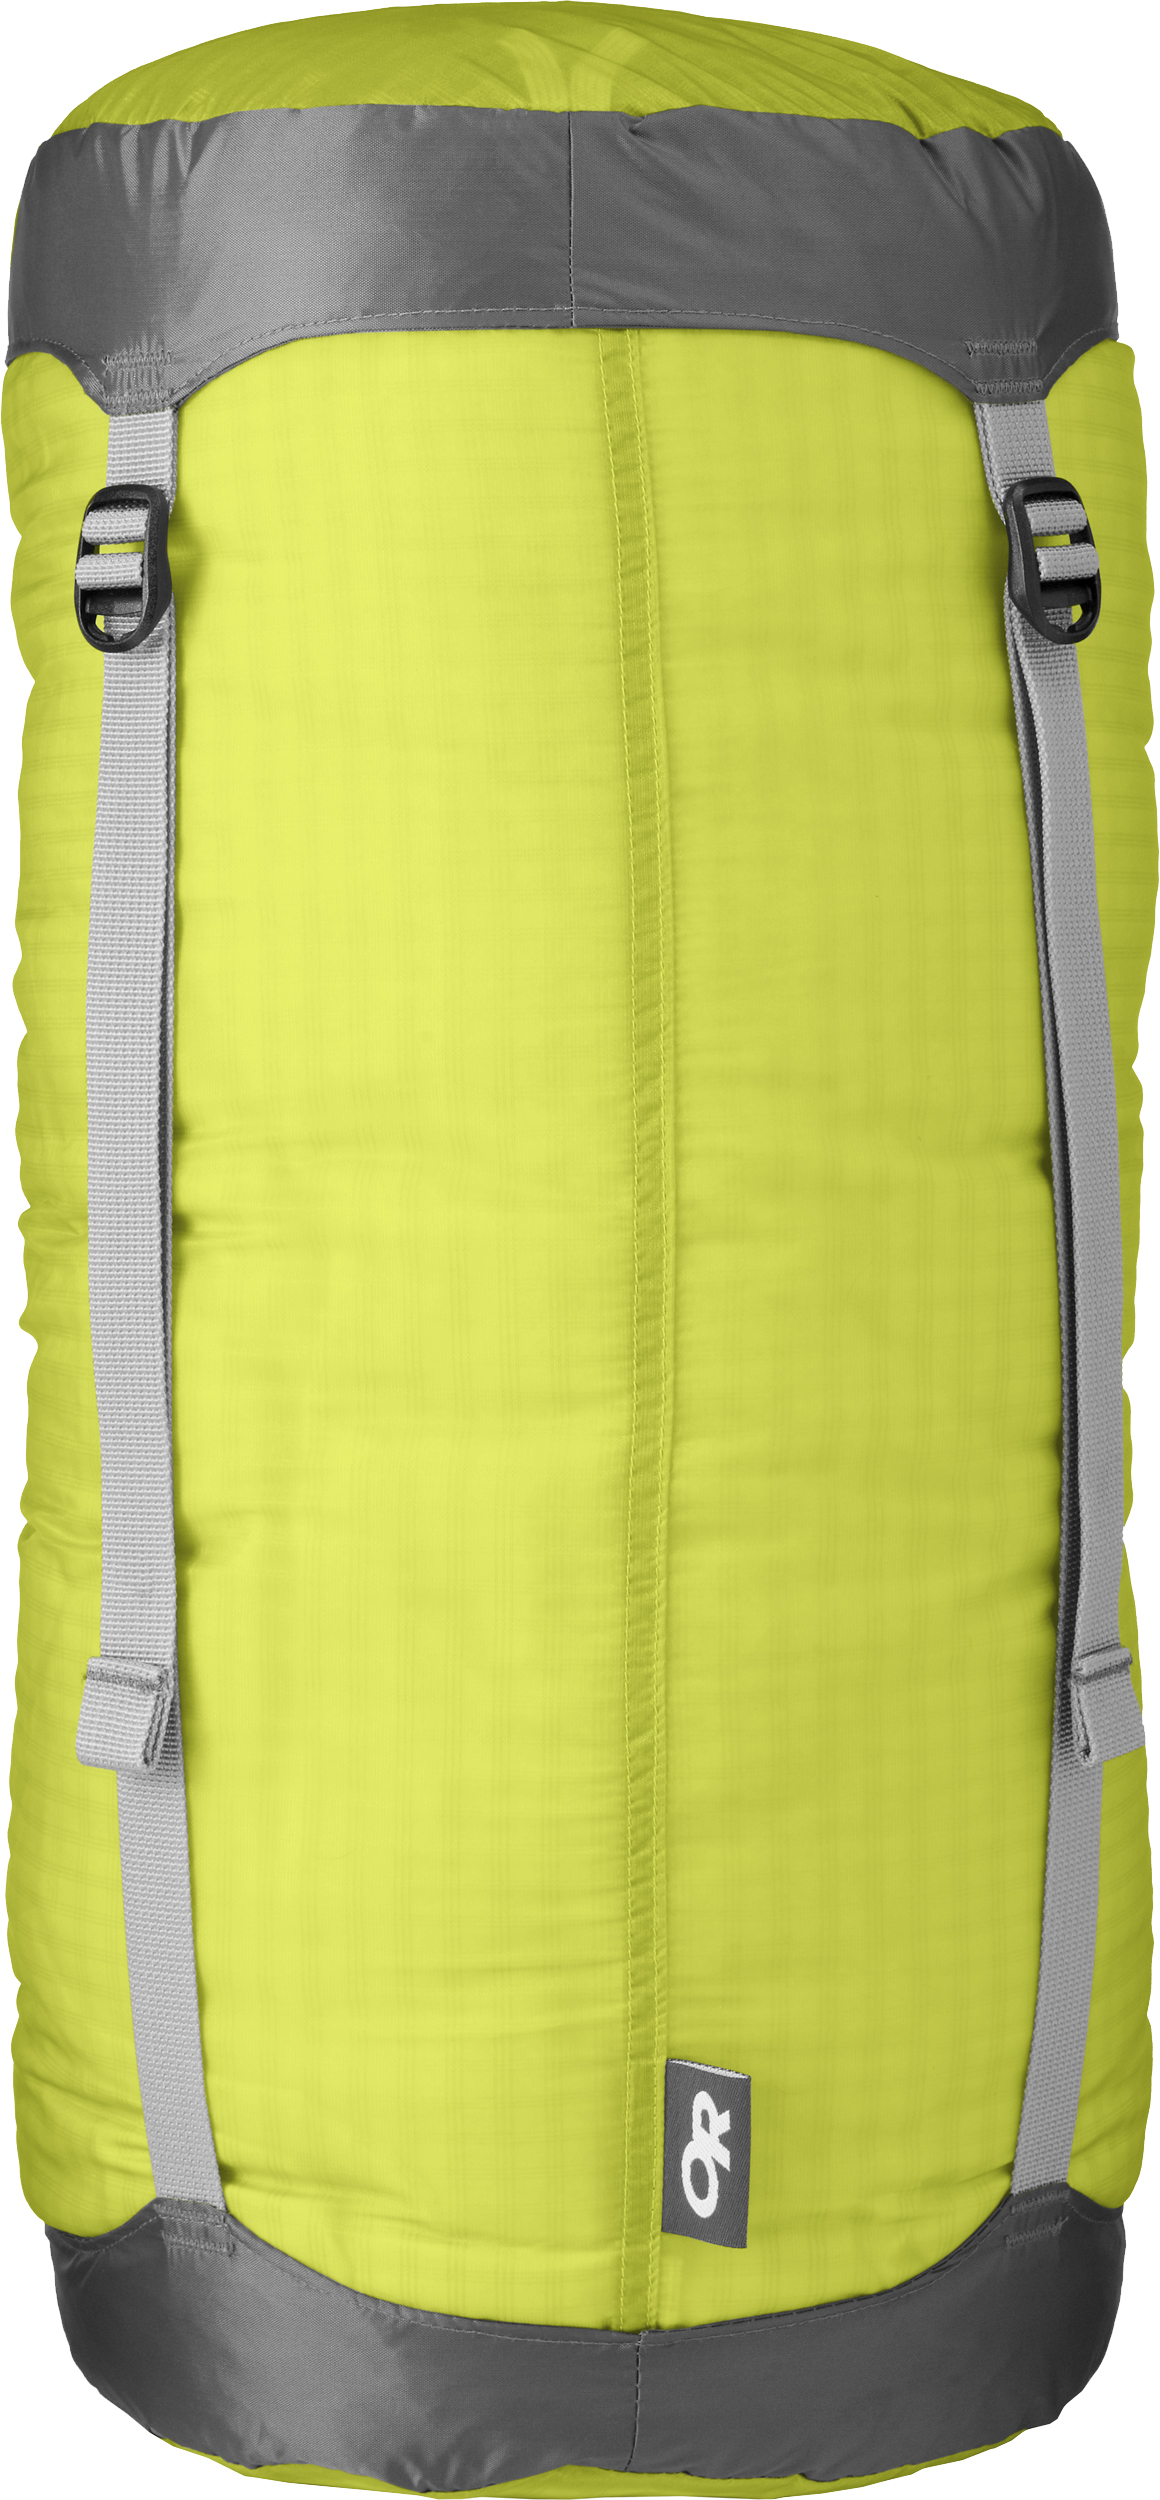 c5a20d297b13 Outdoor Research Ultralight Compression Stuff Sack